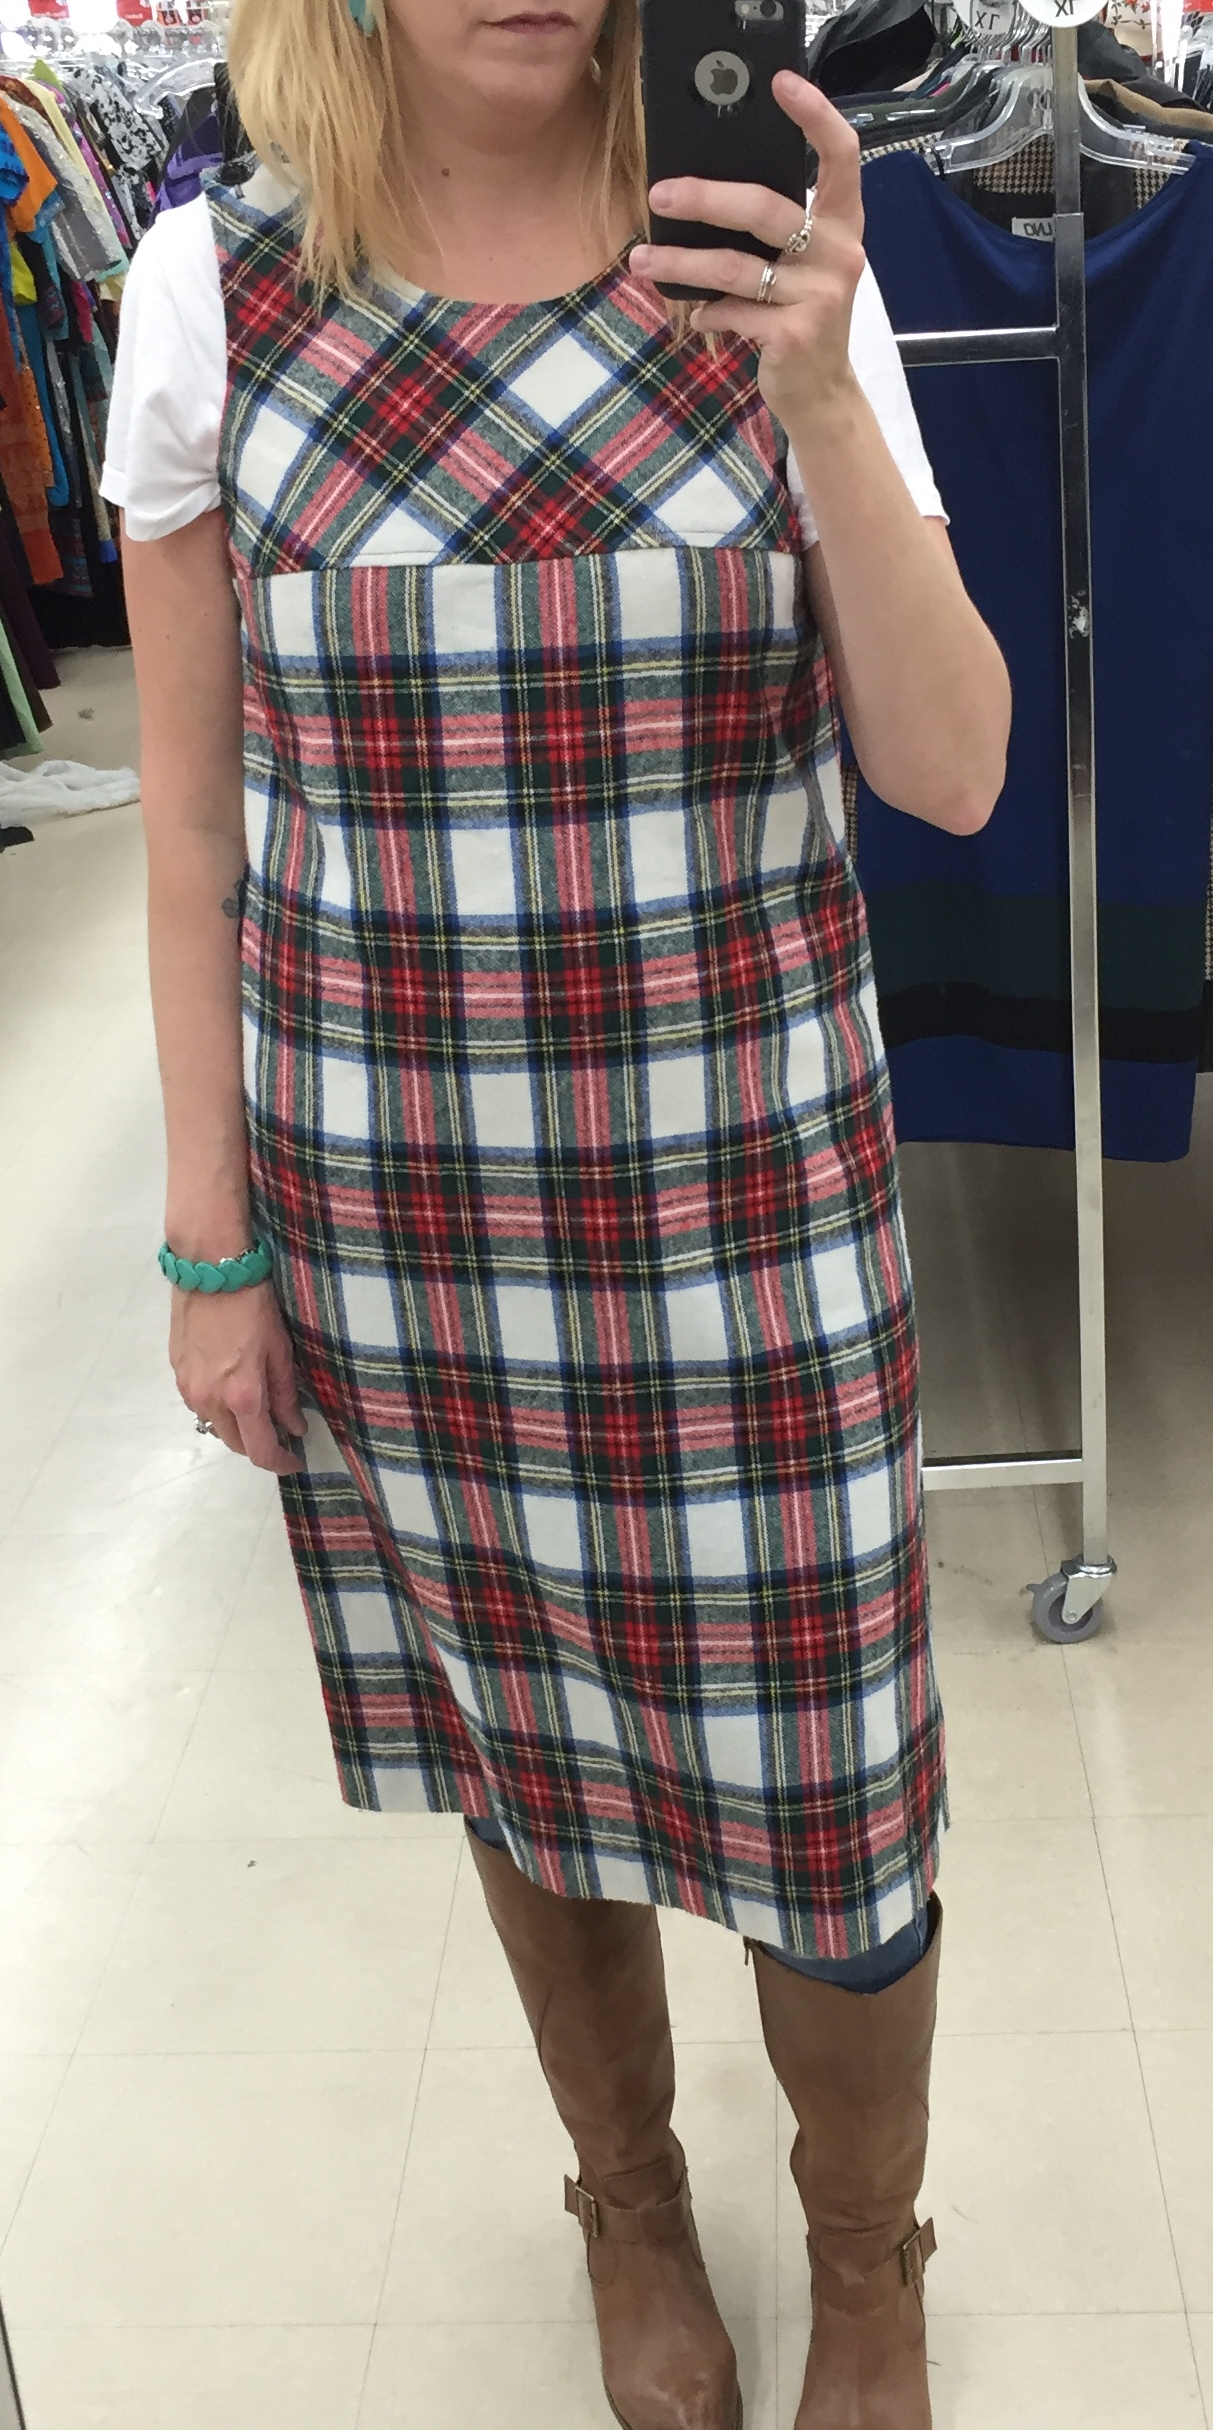 This plaid dress was $5.60